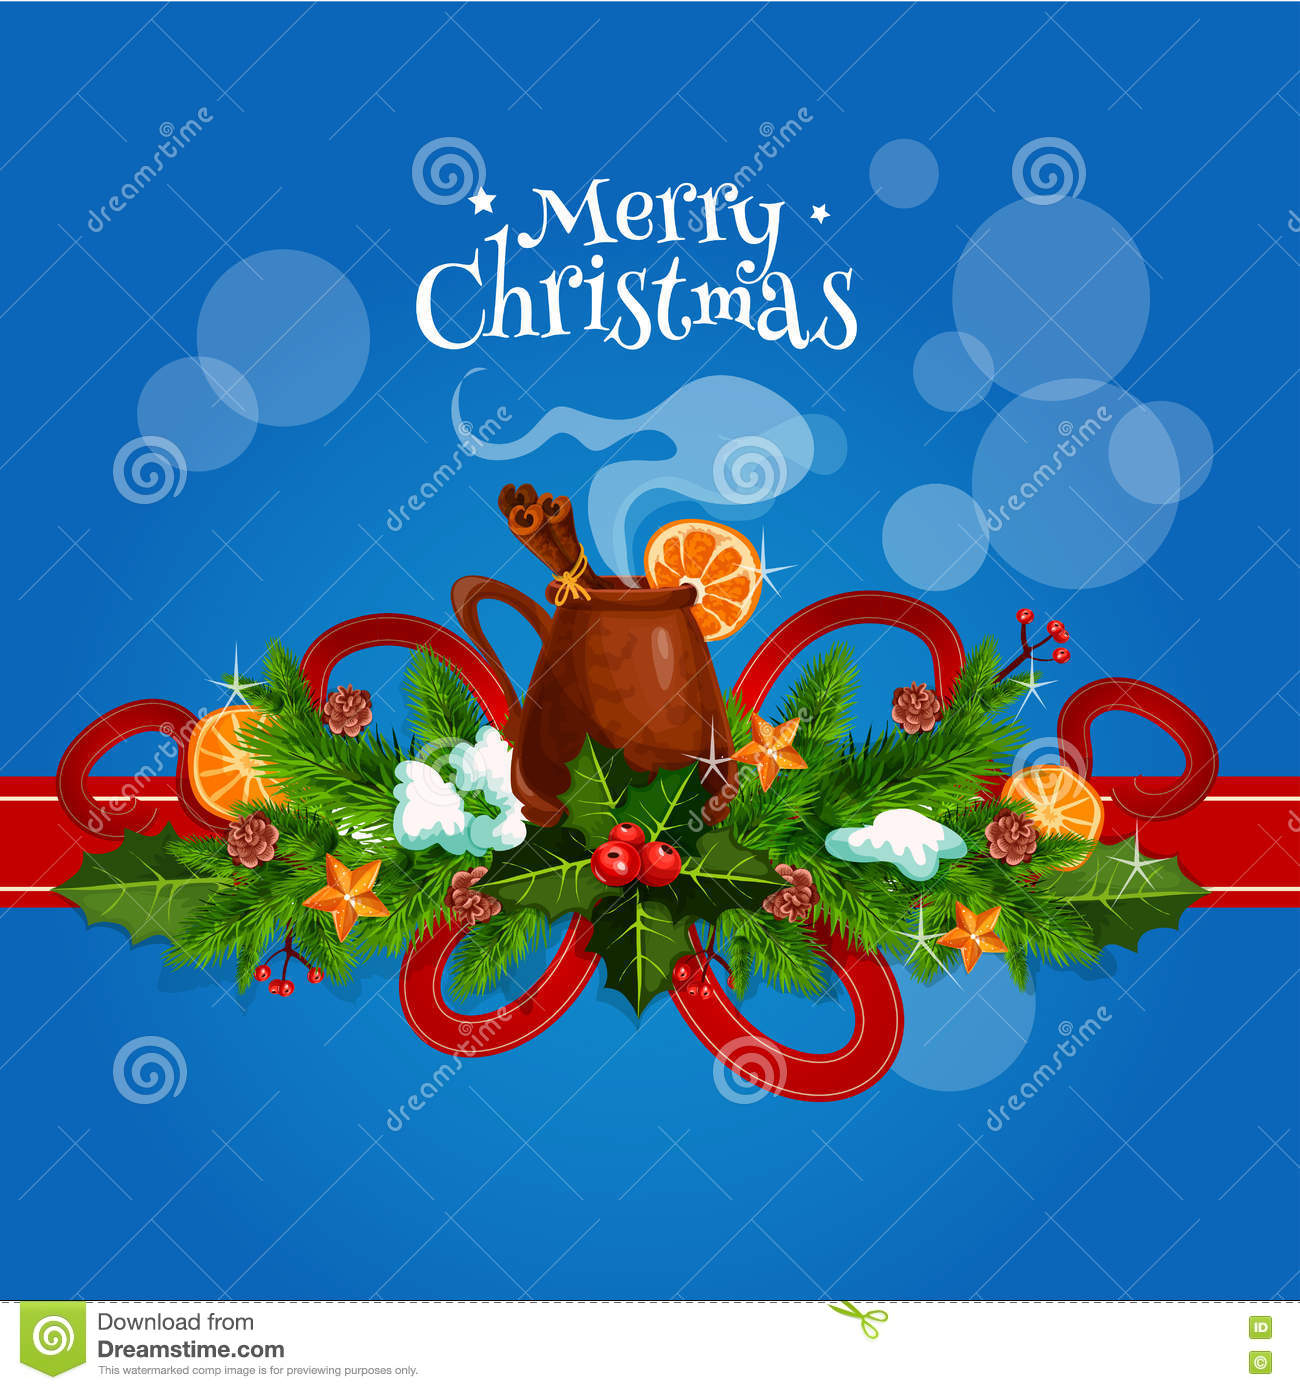 Merry Christmas Card With Mulled Wine Stock Vector Illustration Of